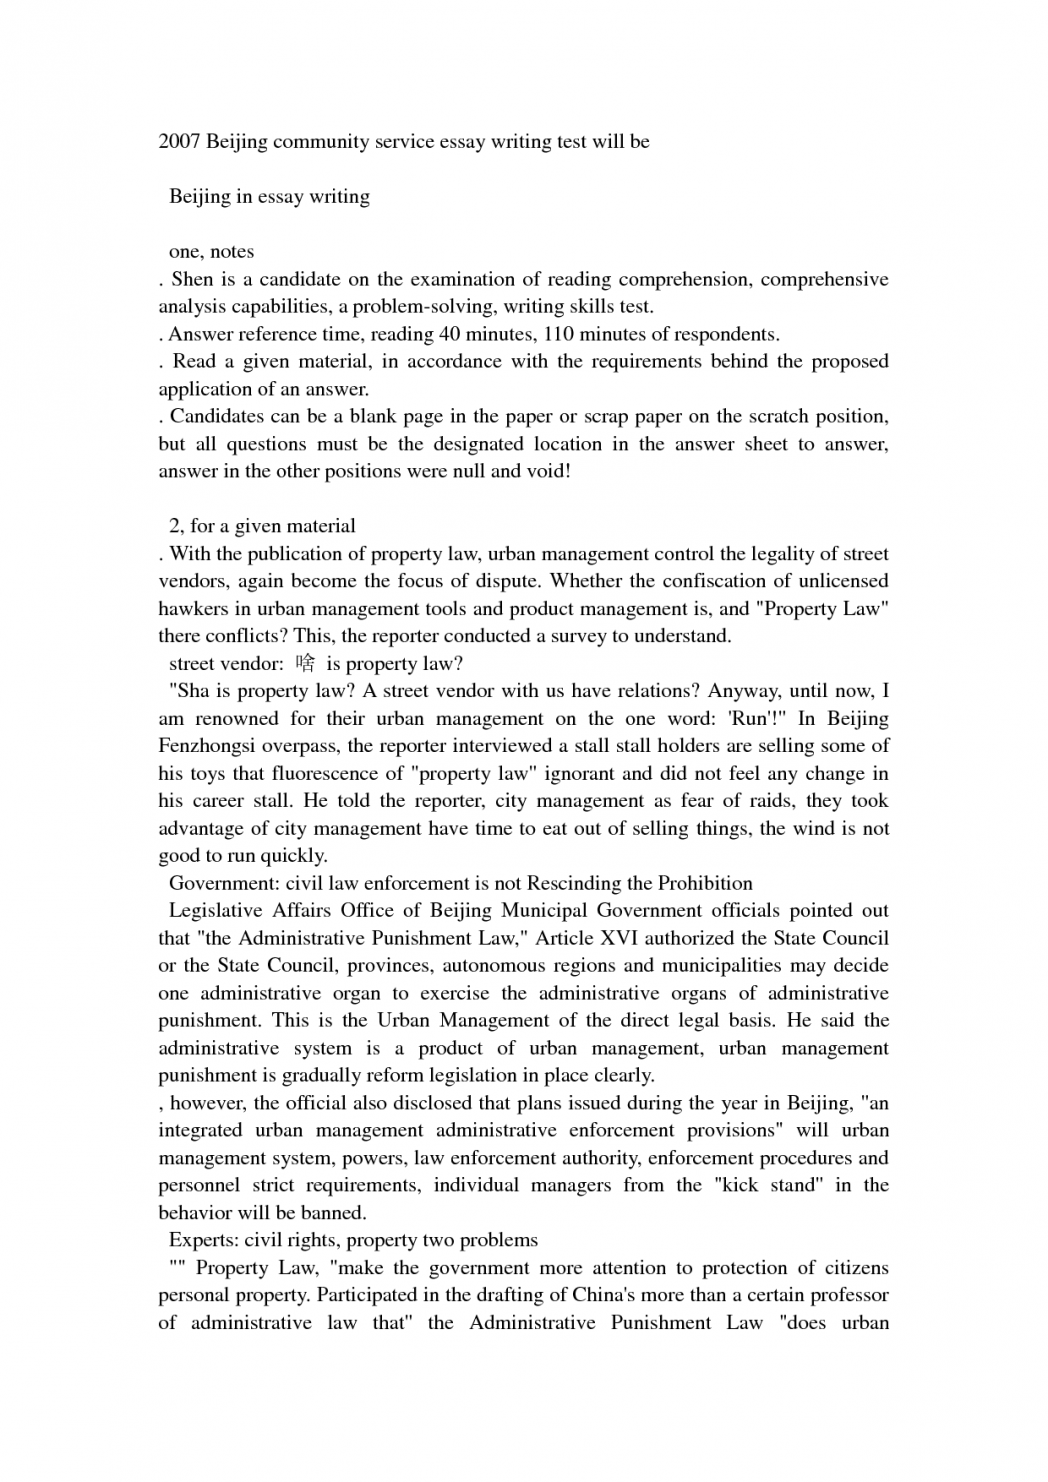 011 Essay Example Observation Topic Ideas English Argument Topics Argumentative For Middle School Saief Synthesis Goodntroversialllege Students Sentence Causal Proposal Rogerian 1048x1482 Awesome Controversial Persuasive Speech 2018 2017 In The Philippines Full